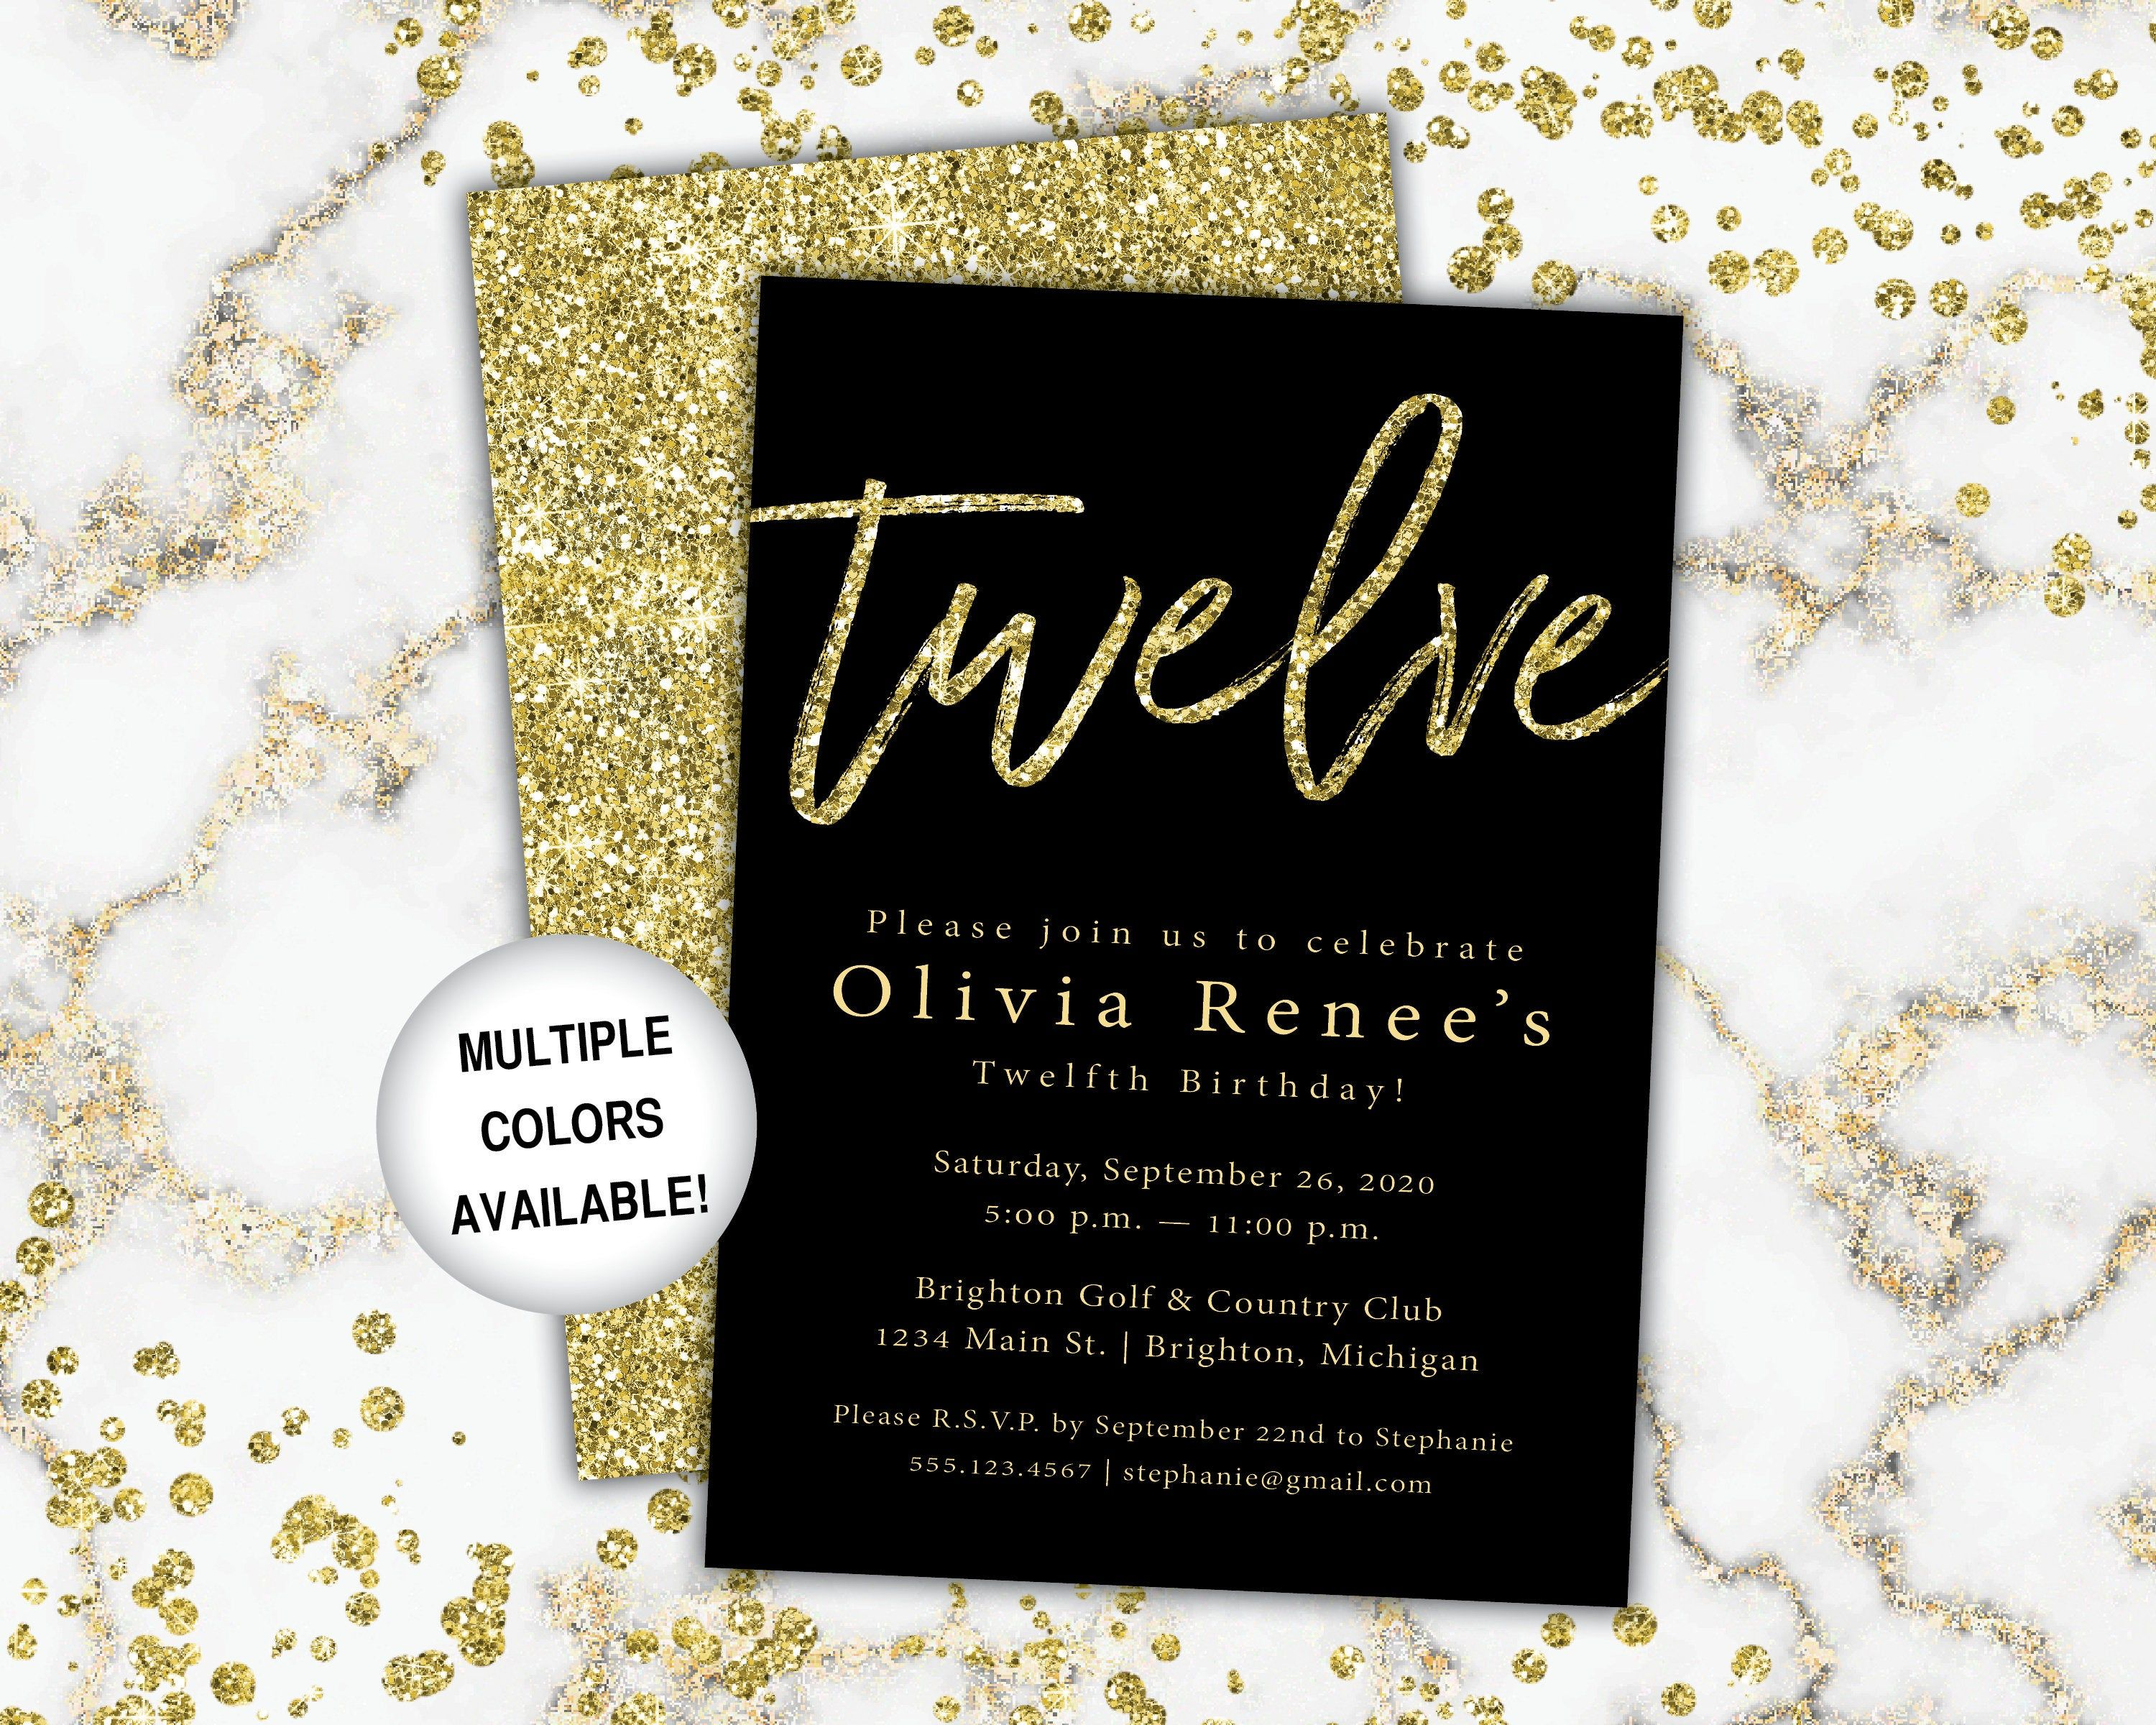 12th Birthday Invitation Black And Gold Birthday Invitation Etsy Bday Invitations Birthday Invitations Birthday Invitation Templates